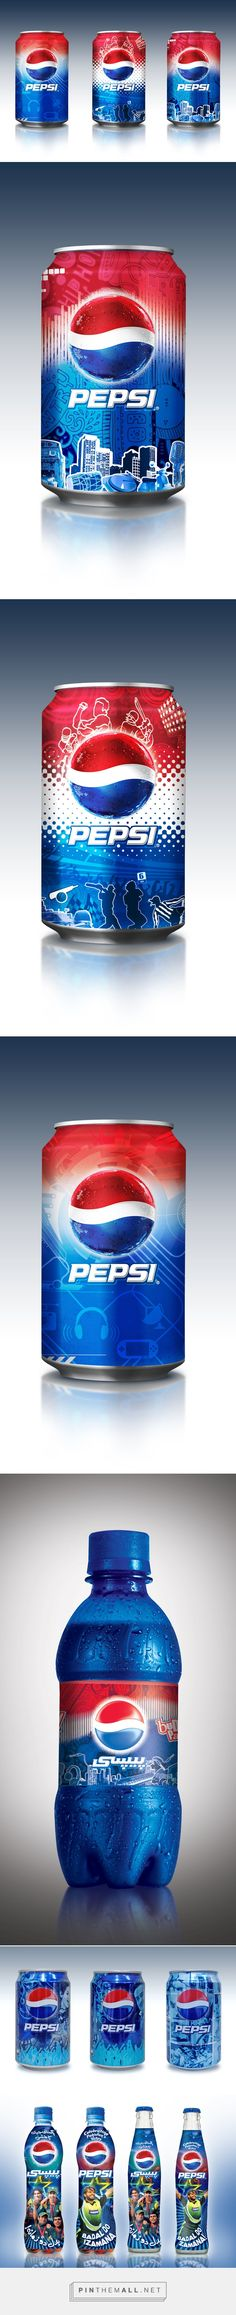 Pepsi by Ammad Kahn on Behance curated by Packaging Diva PD. Nice assorted packaging design collection.